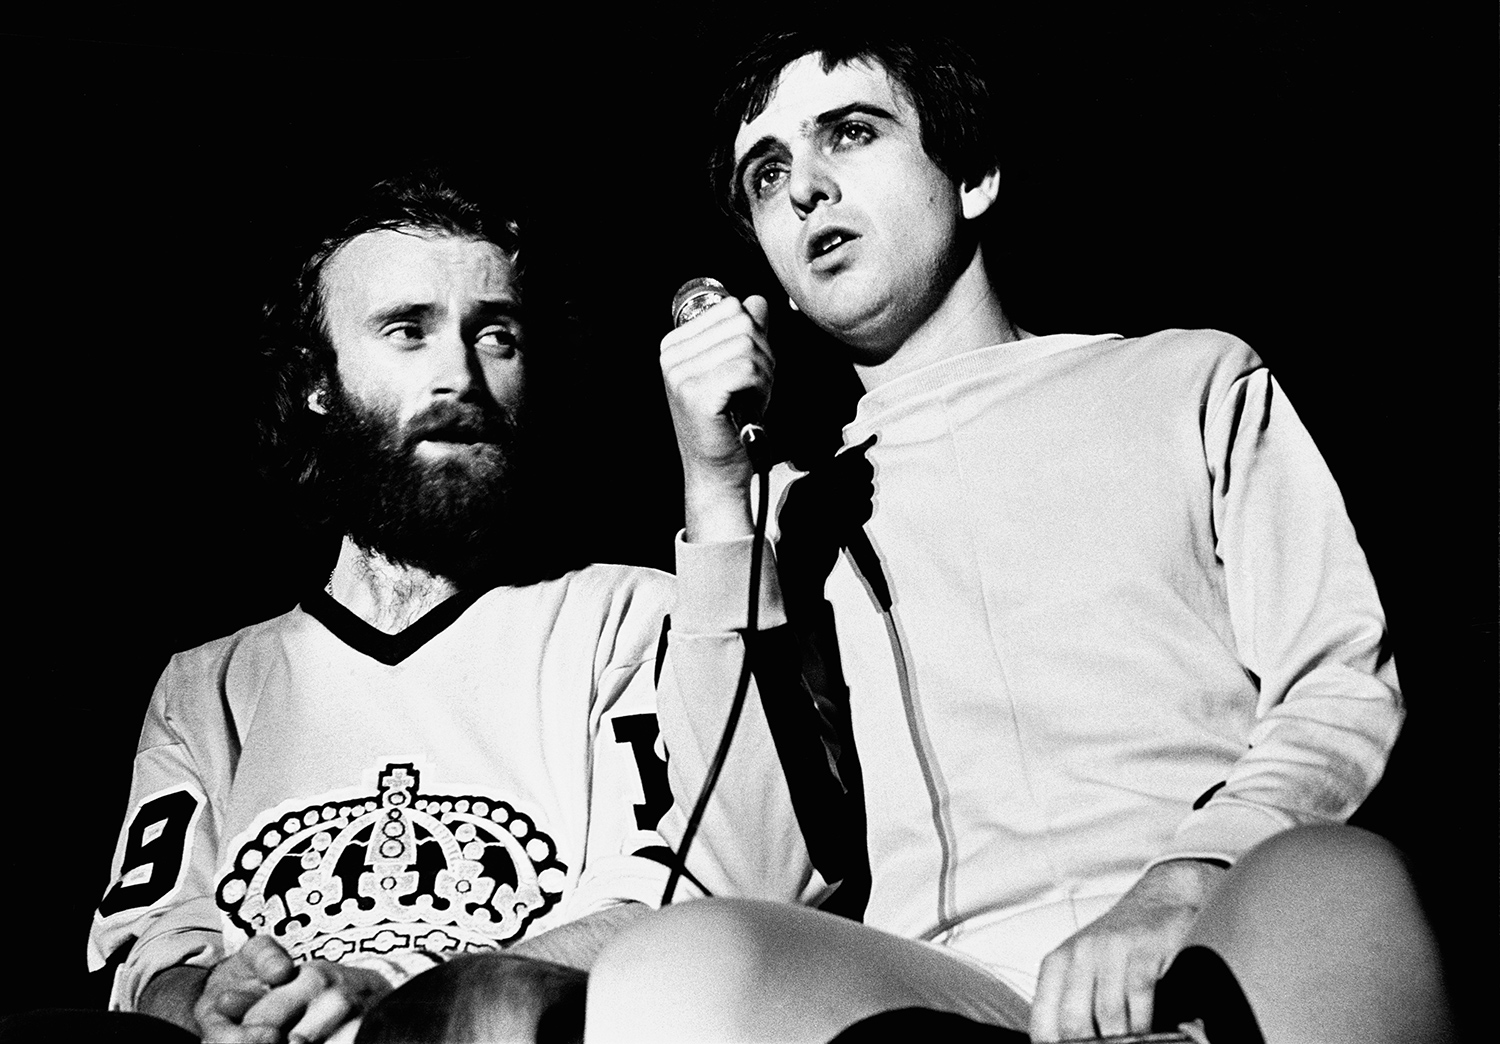 rs-246660-Peter-Gabriel-and-Phil-Collins.jpg